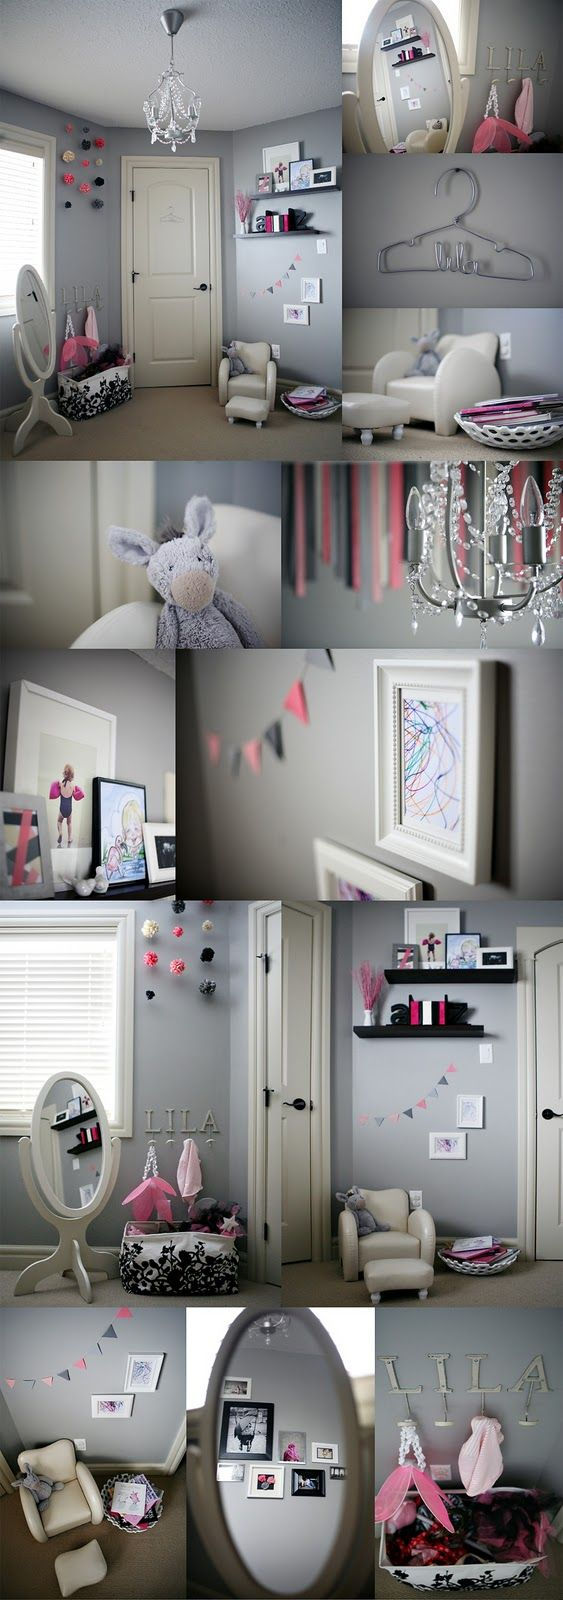 Blue Ribbon Studio: Little Girl's Room....(via Pink Sugar Photography)